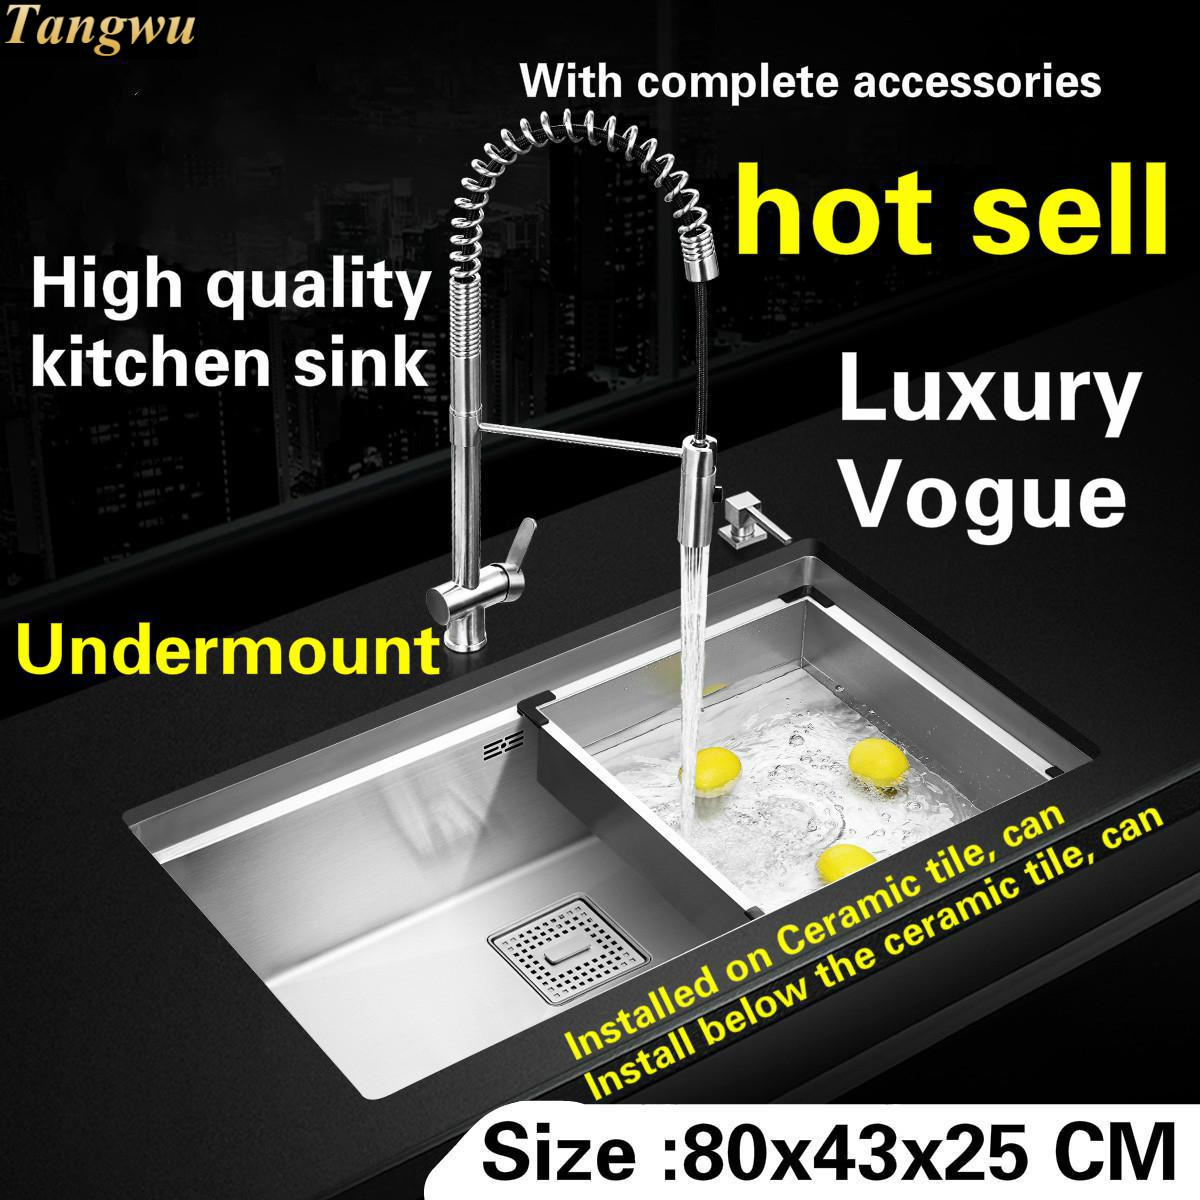 Tangwu Apartment High-grade Large Kitchen Sink  Thick Food-grade 304 Stainless Steel Durable Manual Single Slot 800x430x250 Mm